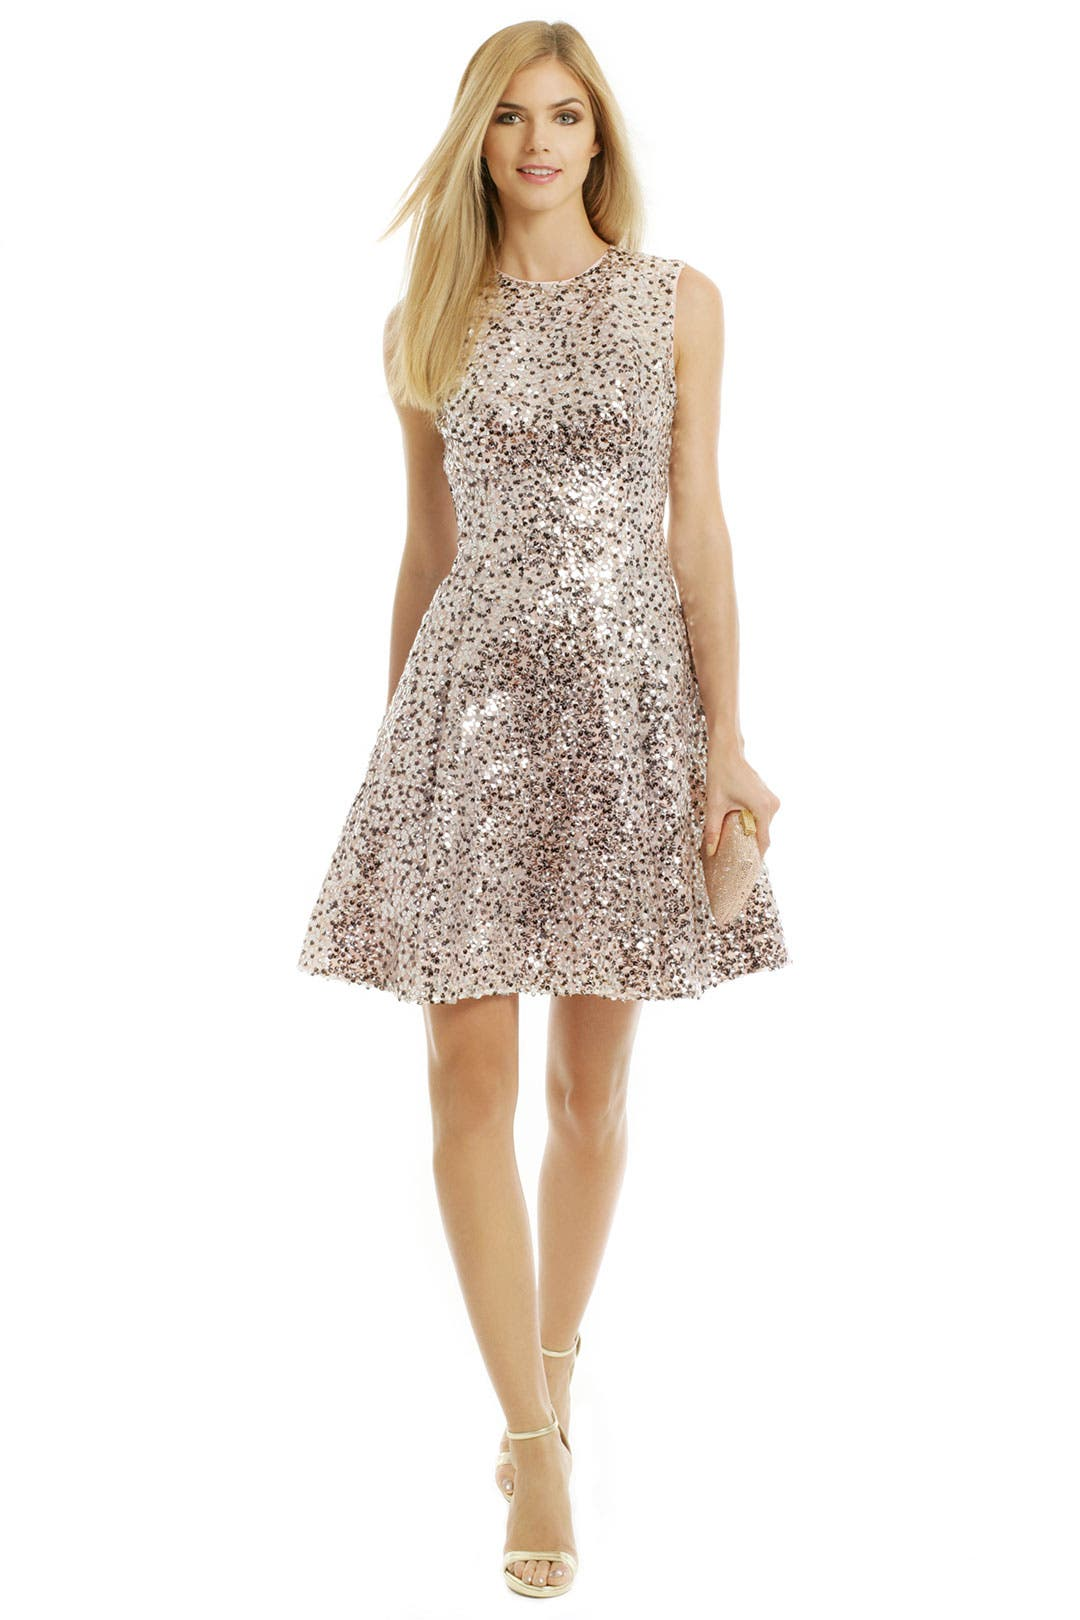 Celebrate Good Times Dress by kate spade new york